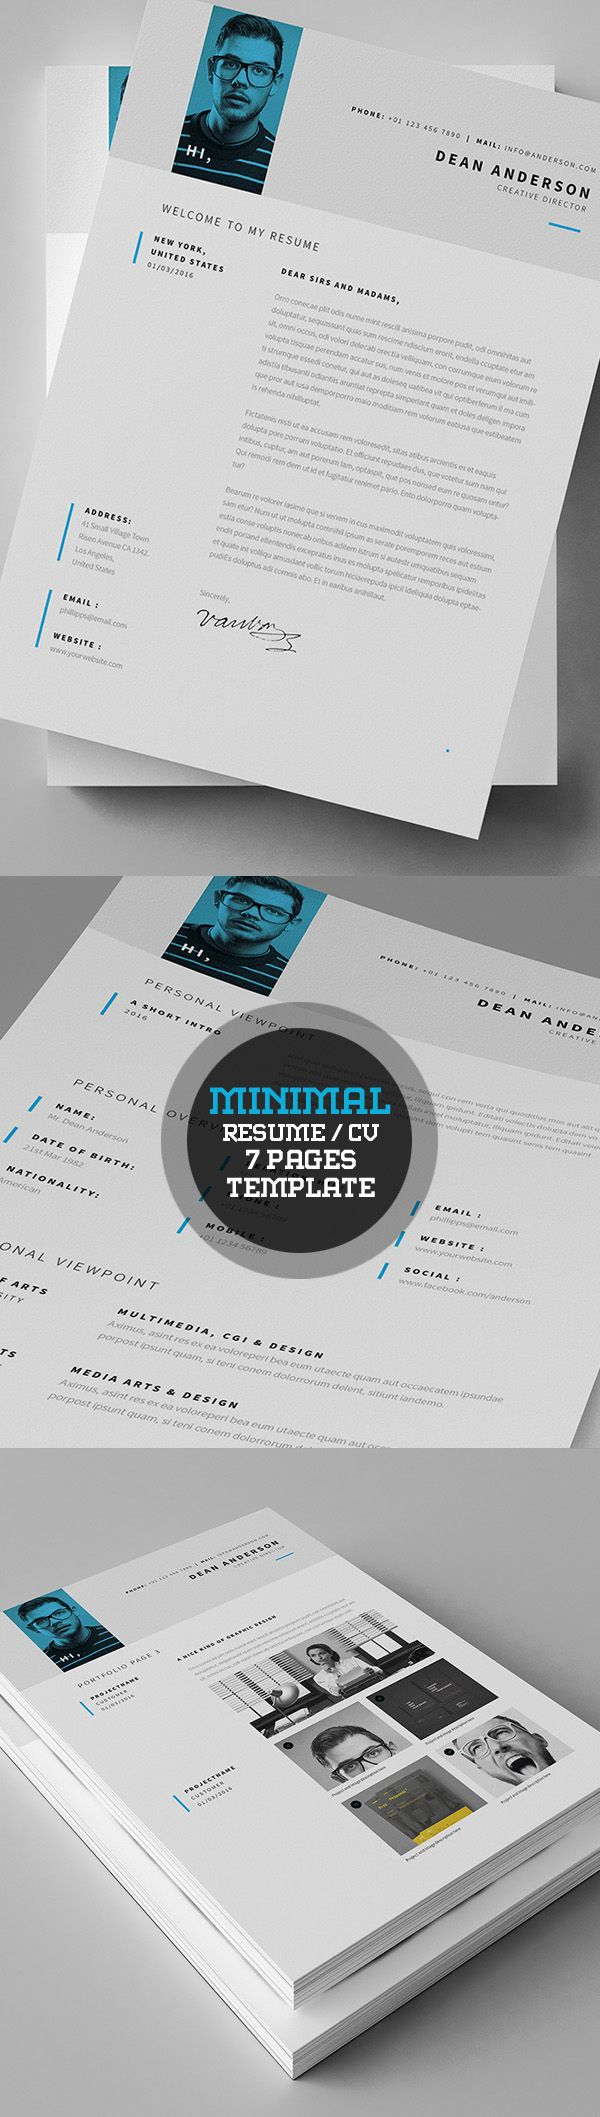 the modern resume   cv templates are made in adobe photoshop and illustrator and converted into